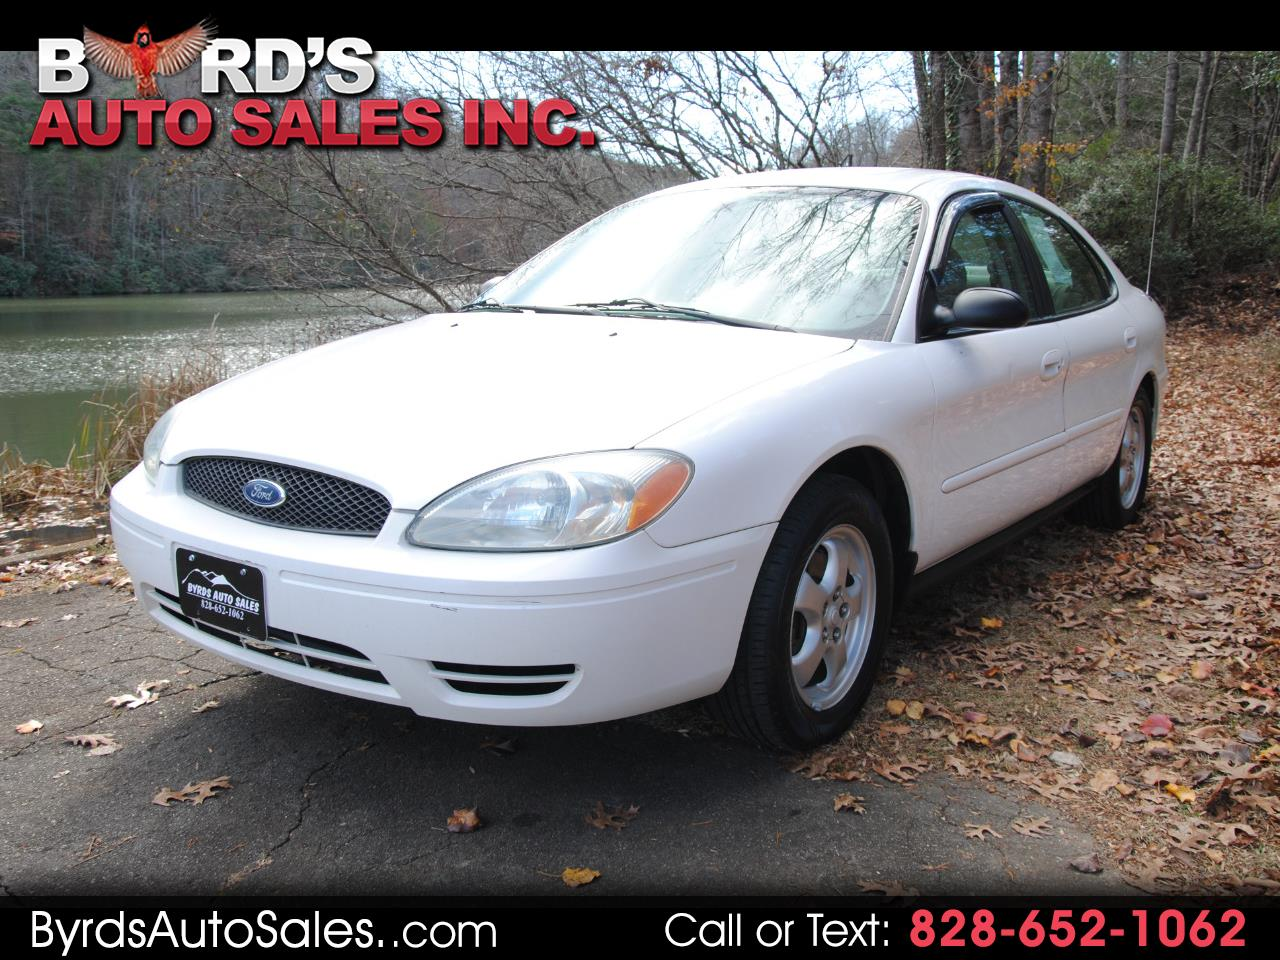 2004 Ford Taurus 4dr Sdn SE